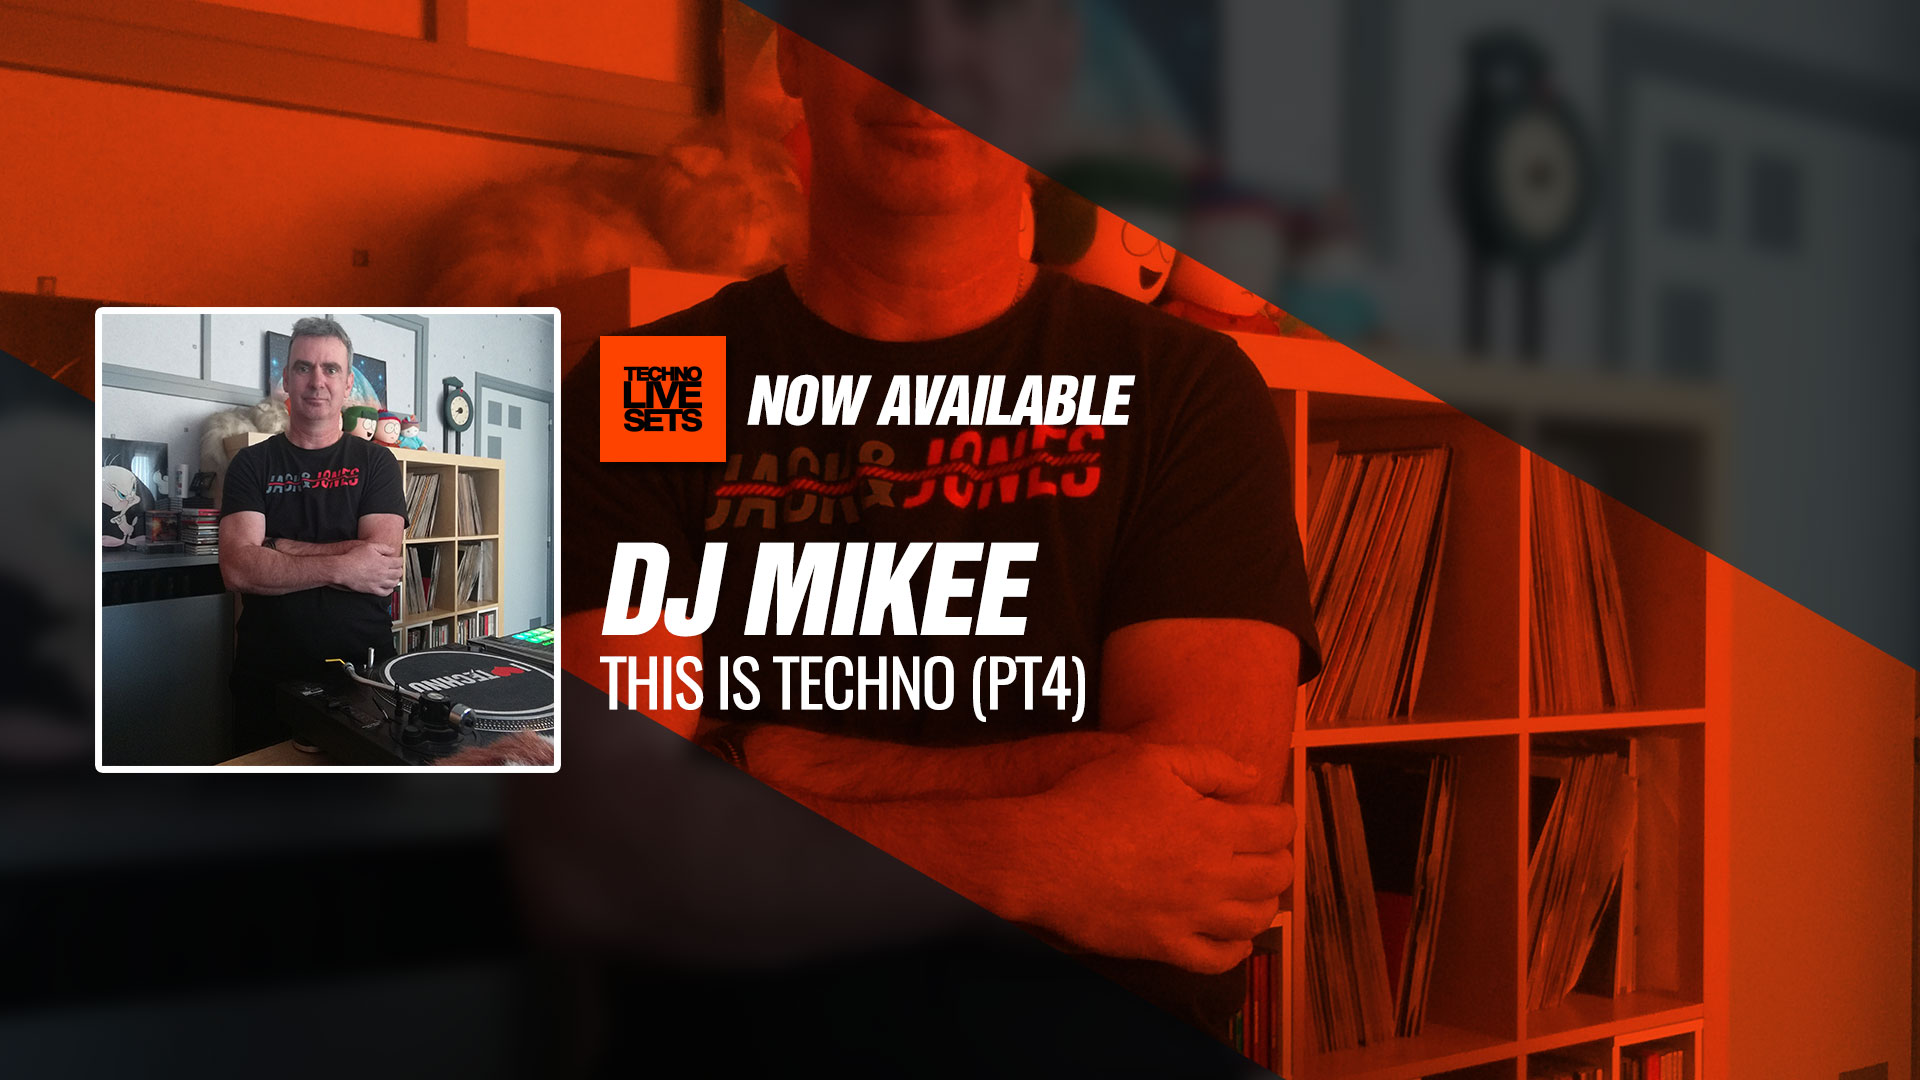 Dj Mikee 2019 This Is Techno (pt4) 27-12-2018